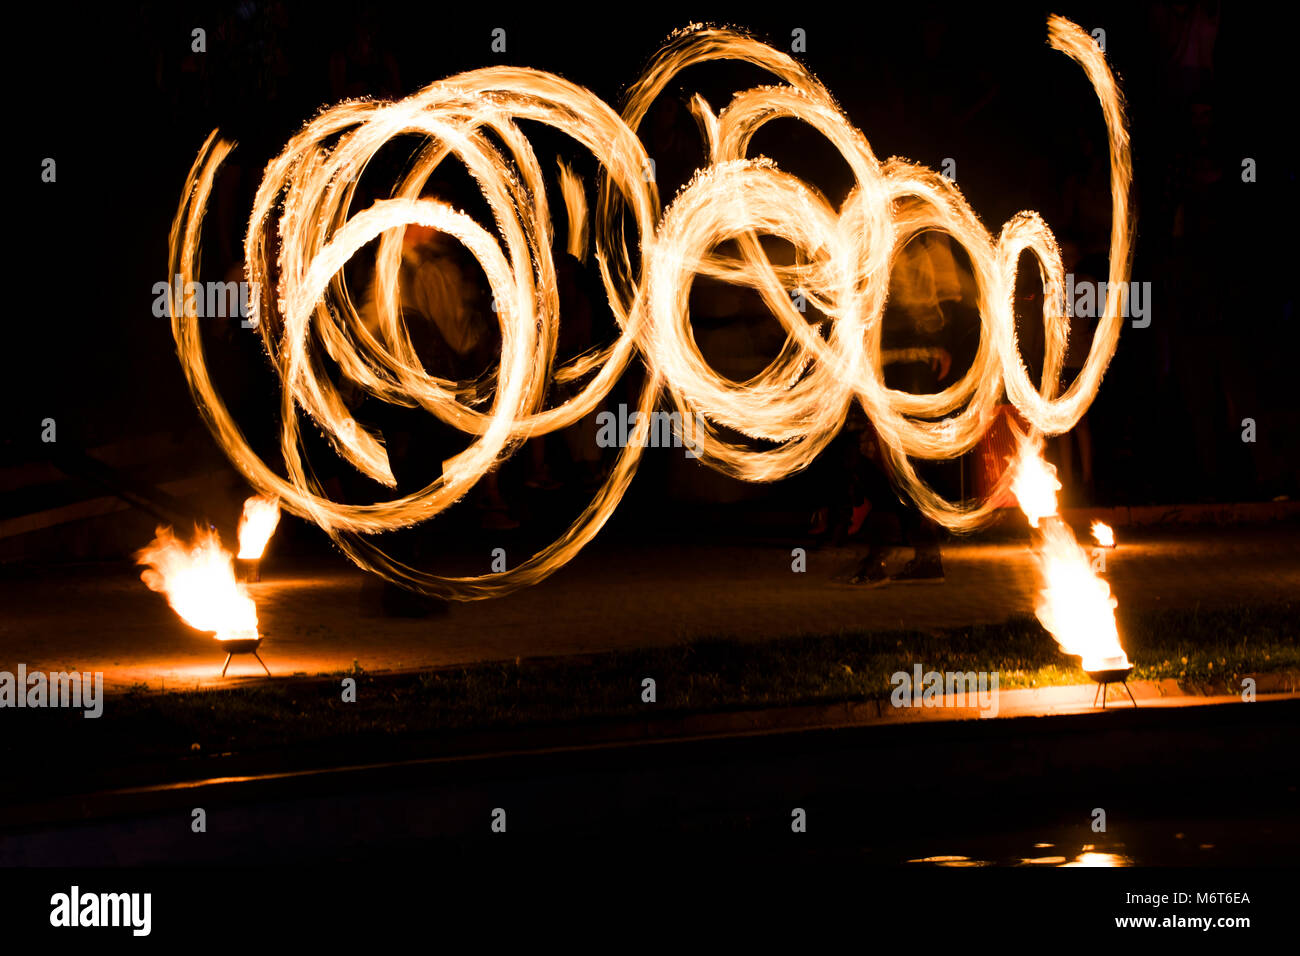 fire show and a lot of the bright sparks in the night. - Stock Image